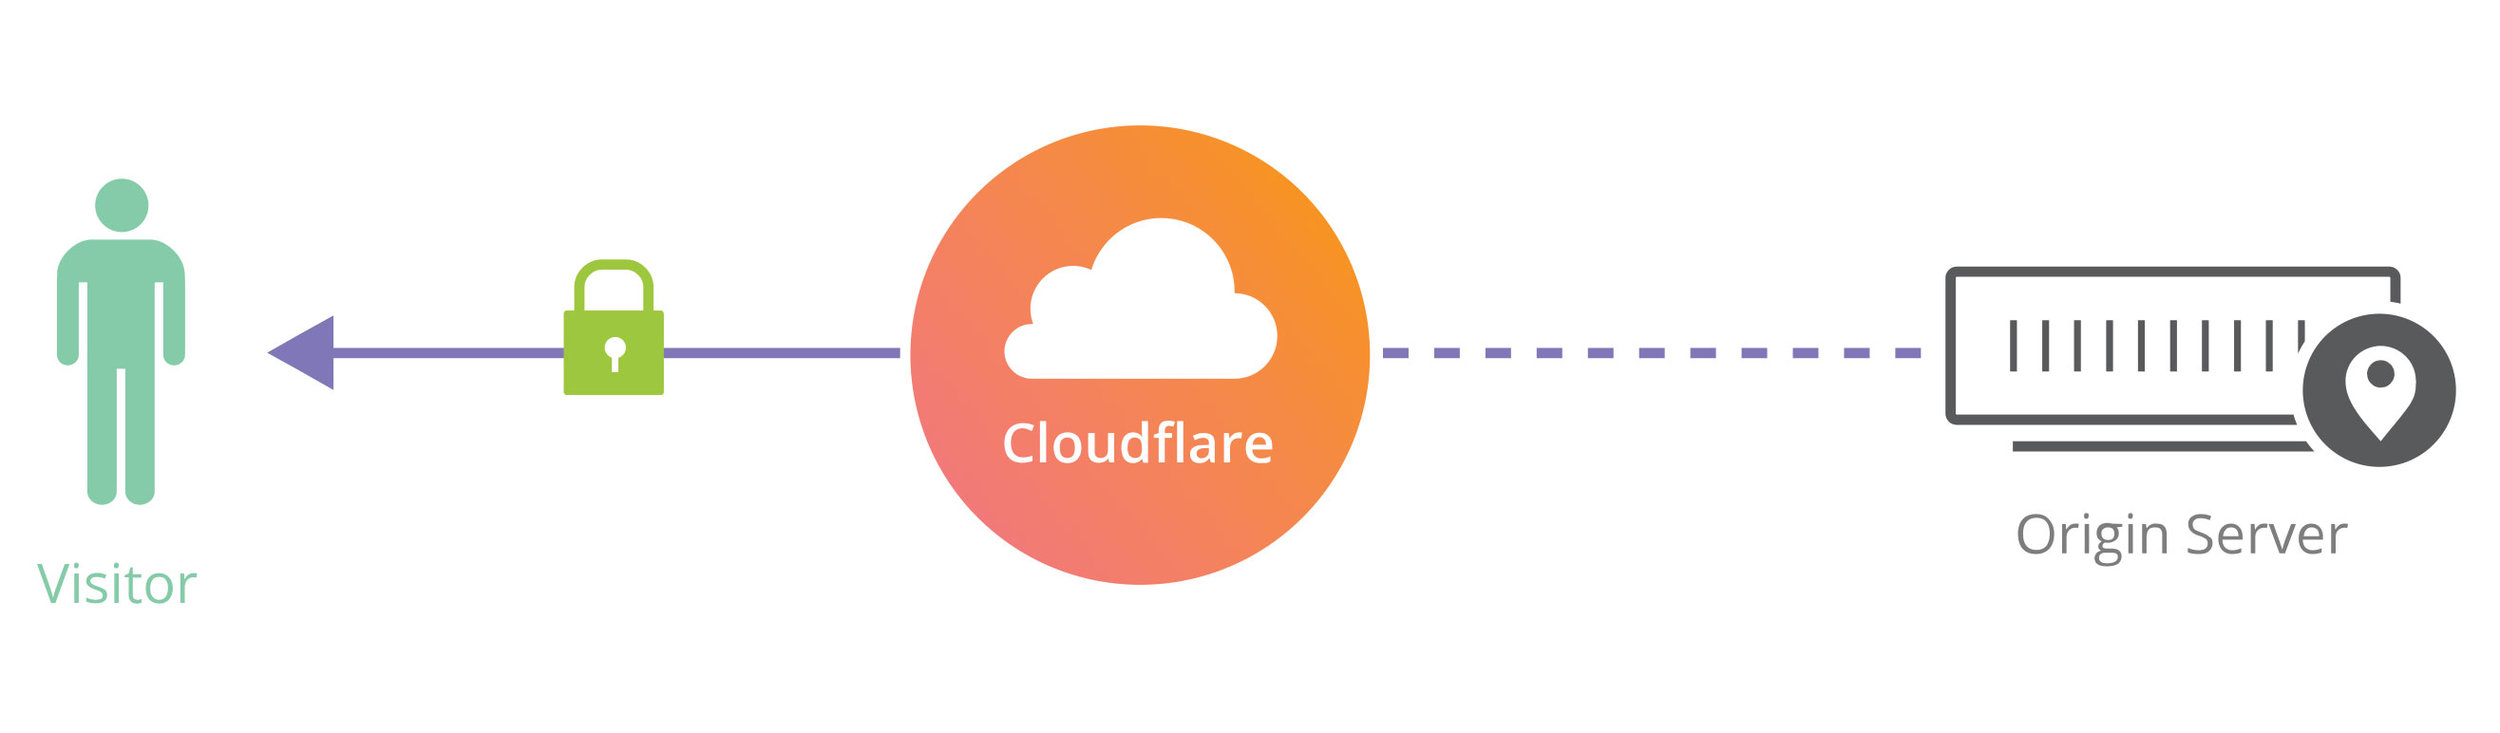 cloudflare_01a.jpg